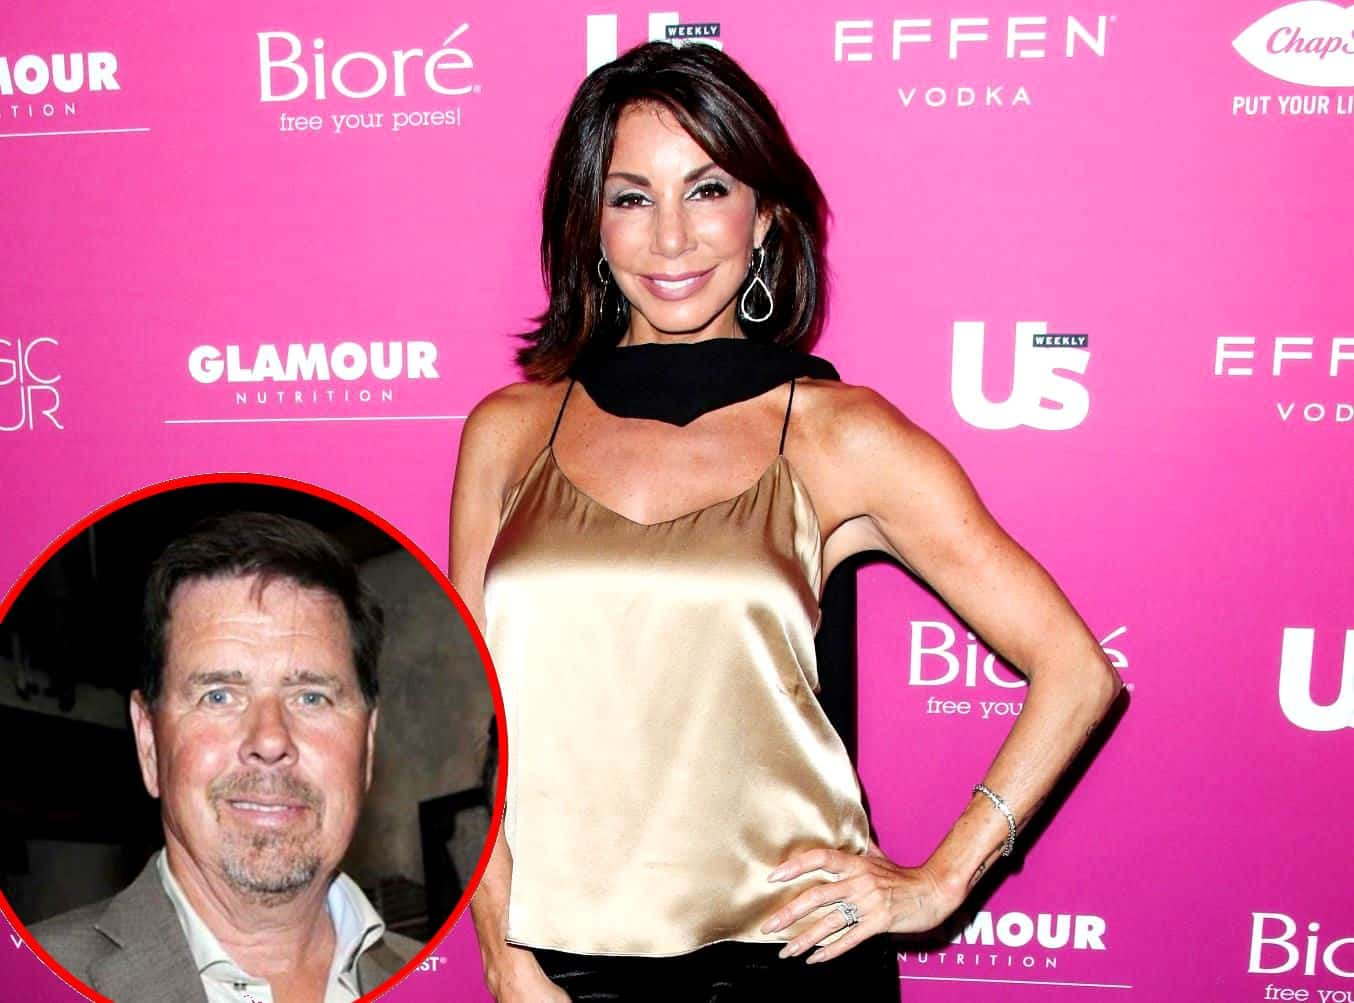 REPORT: RHONJ's Danielle Staub Facing Eviction After Failing to Secure Financing for Ex-Husband Marty Caffrey's $2.15 Million Home